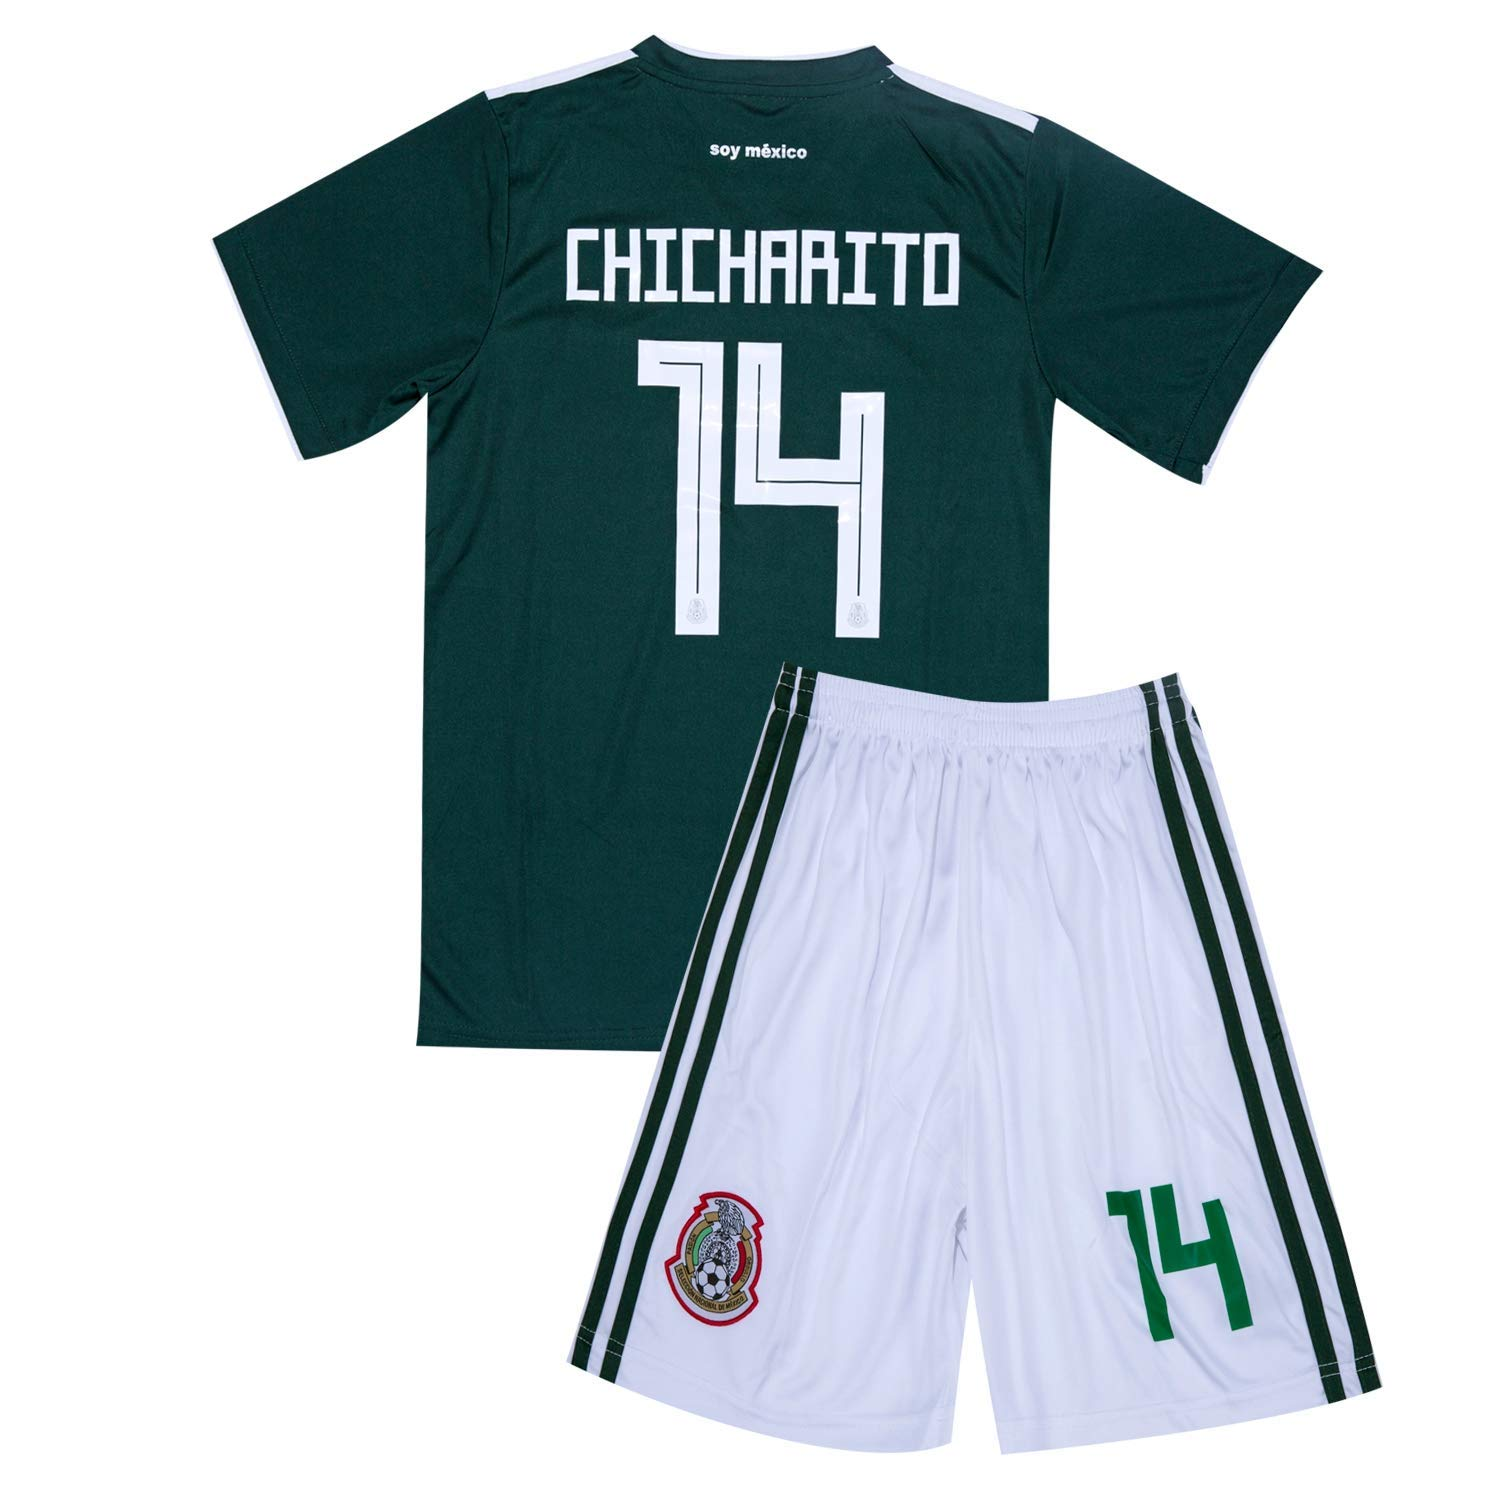 e0ea4ed40 Get Quotations · 2017-2018 Mexico National Team  14 CHICHARITO Home Youth Soccer  Jersey   Shorts Green